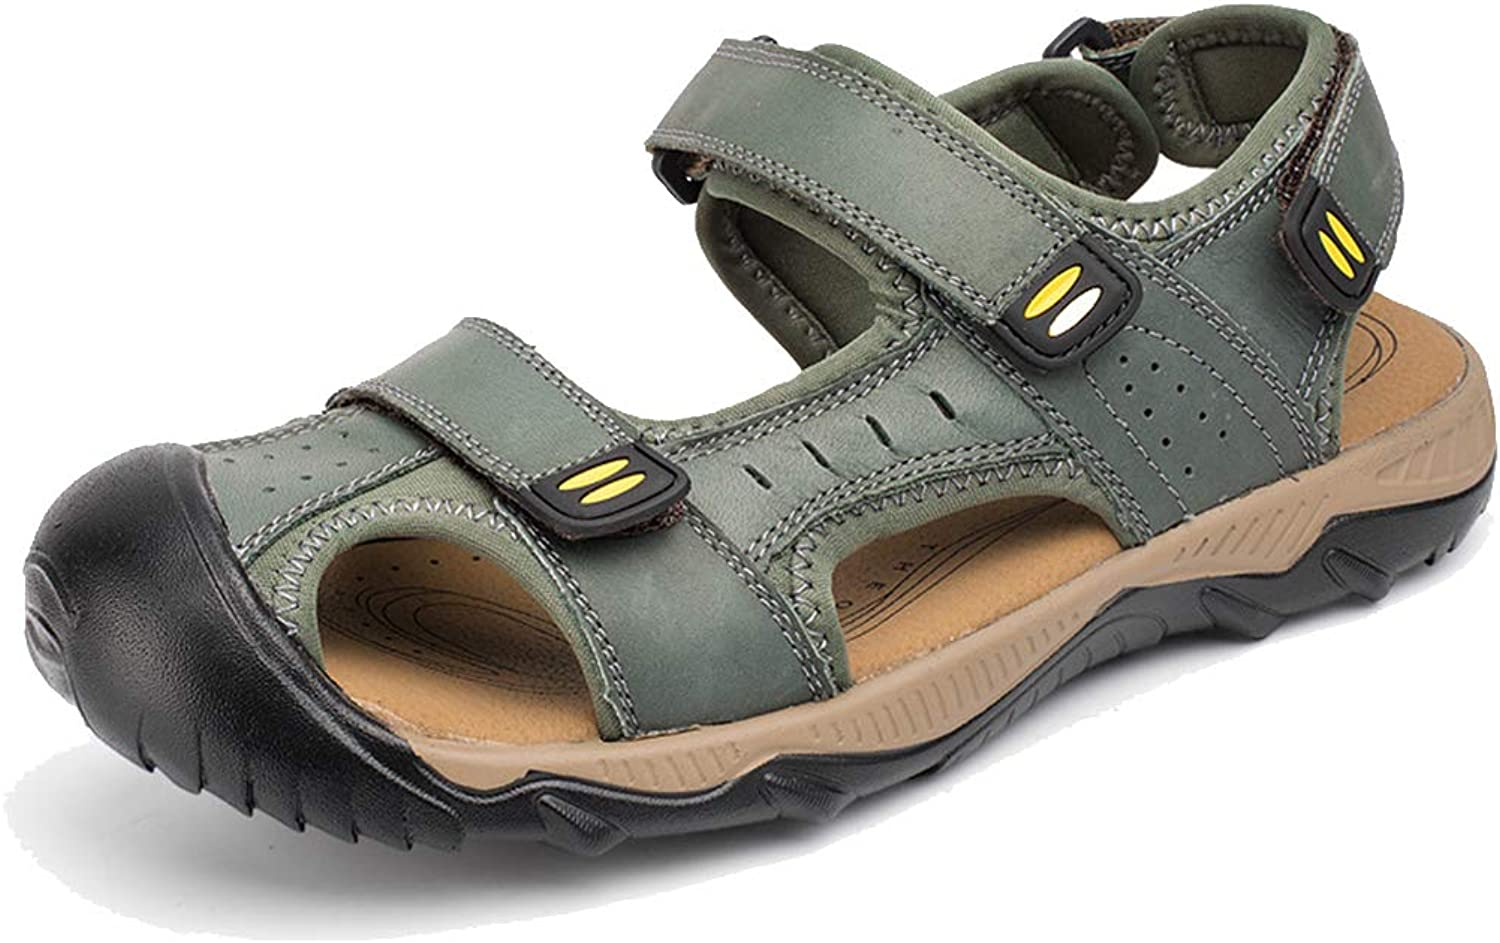 Mens Leather Sandals Summer Trekking Adjustable Lightweight Beach shoes Casual Sandals Outdoor Non-Slip Hiking shoes